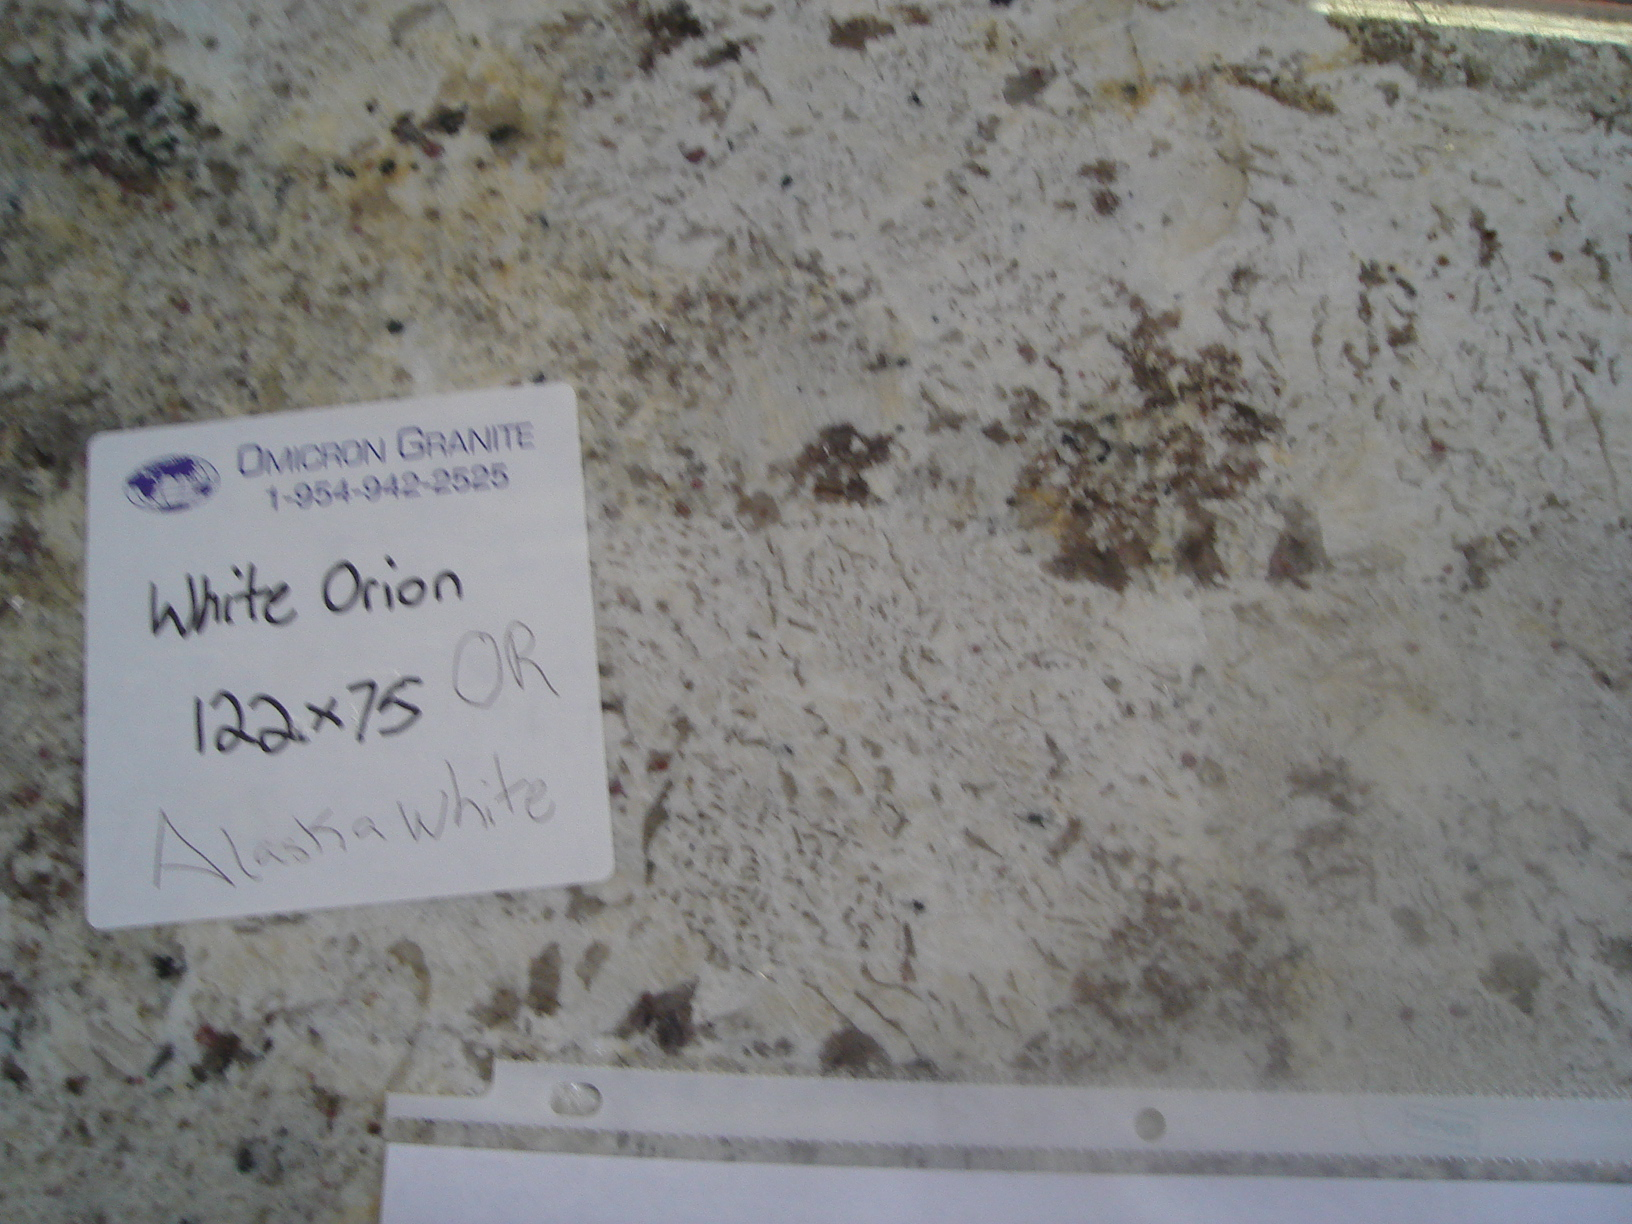 White Orion Omicron Granite Amp Tile